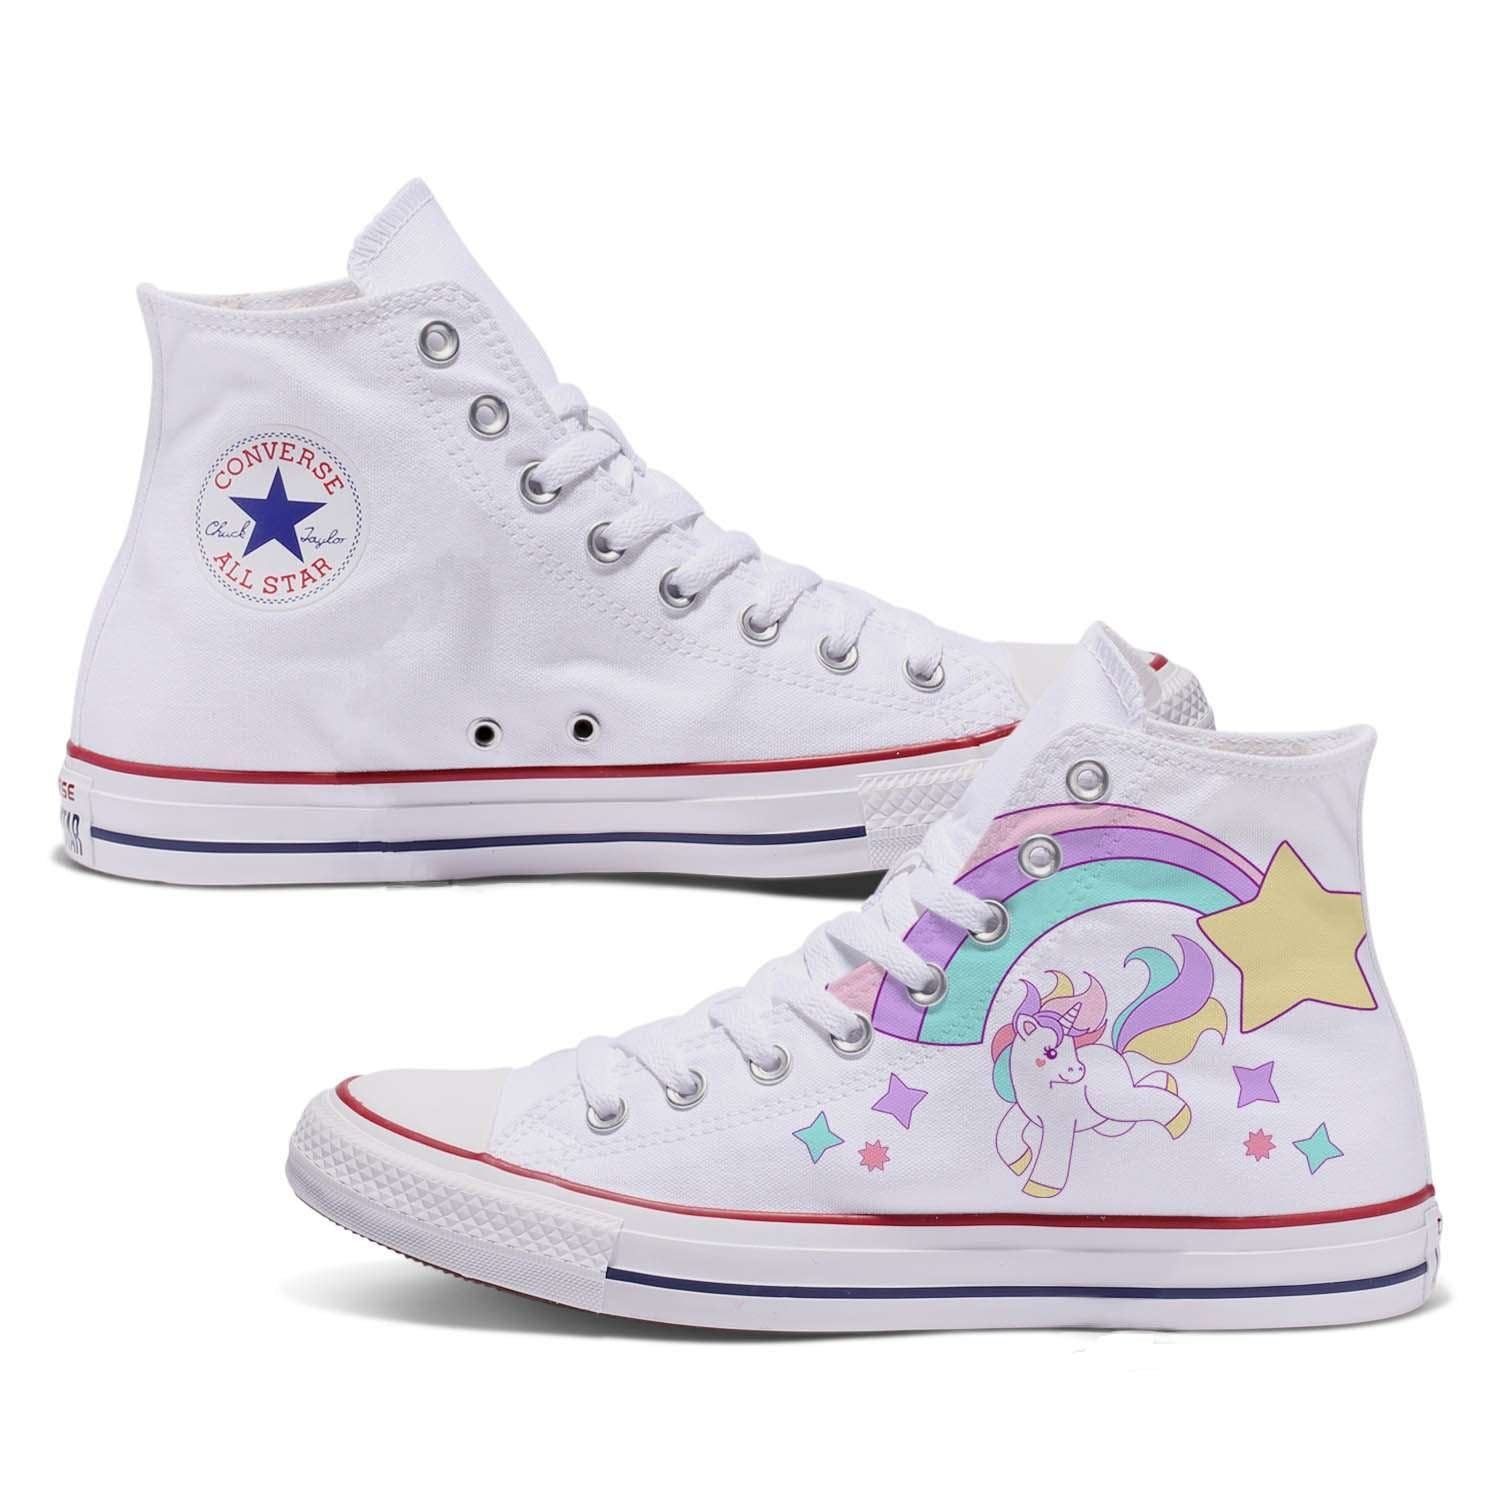 Details about Converse Girls Chuck Taylor All Star Unicorn Hi Top Sneakers Kids Size US 12